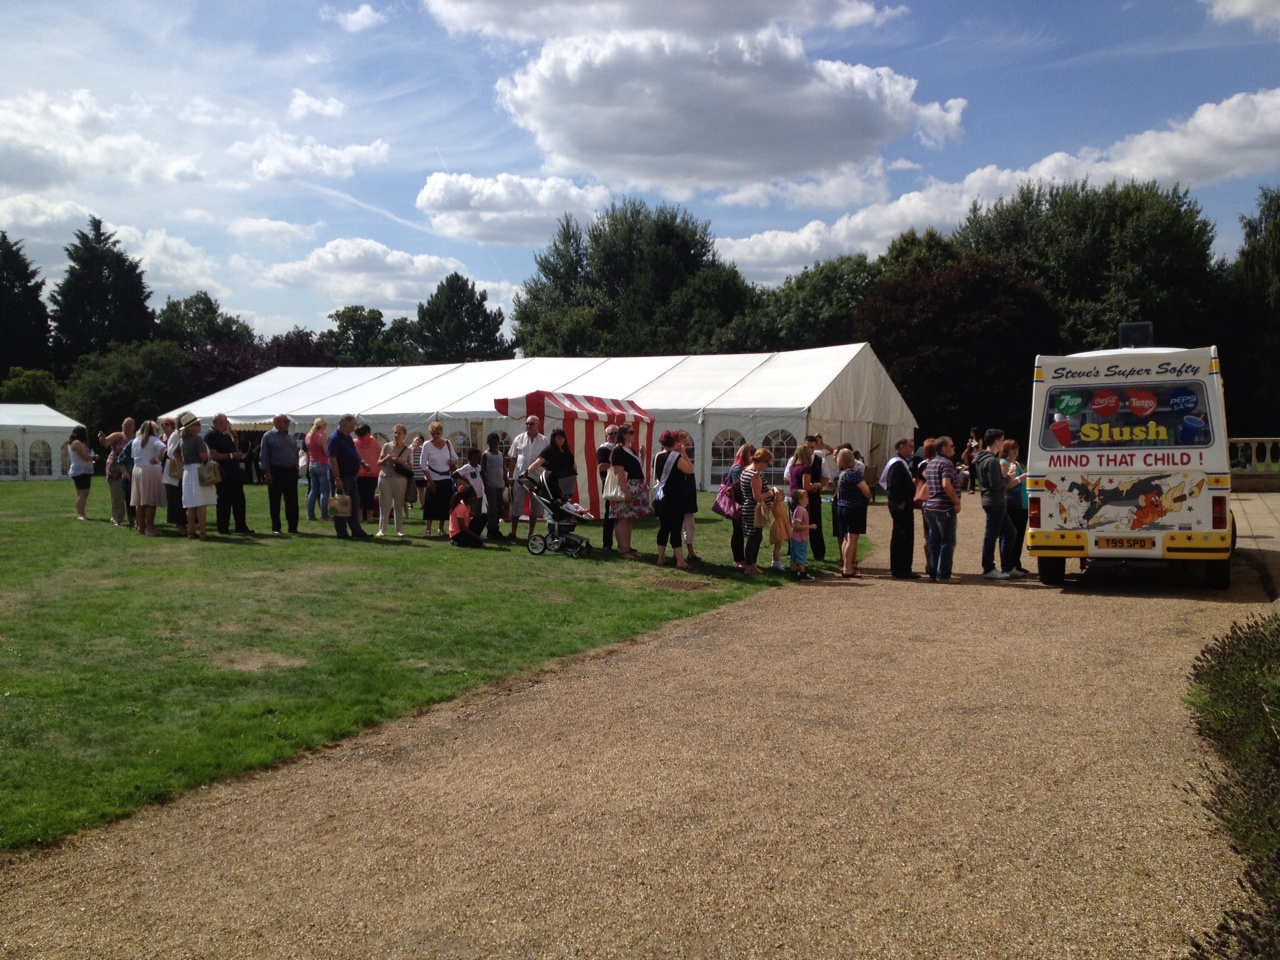 Ice cream van hire and catering by Steve's Ices